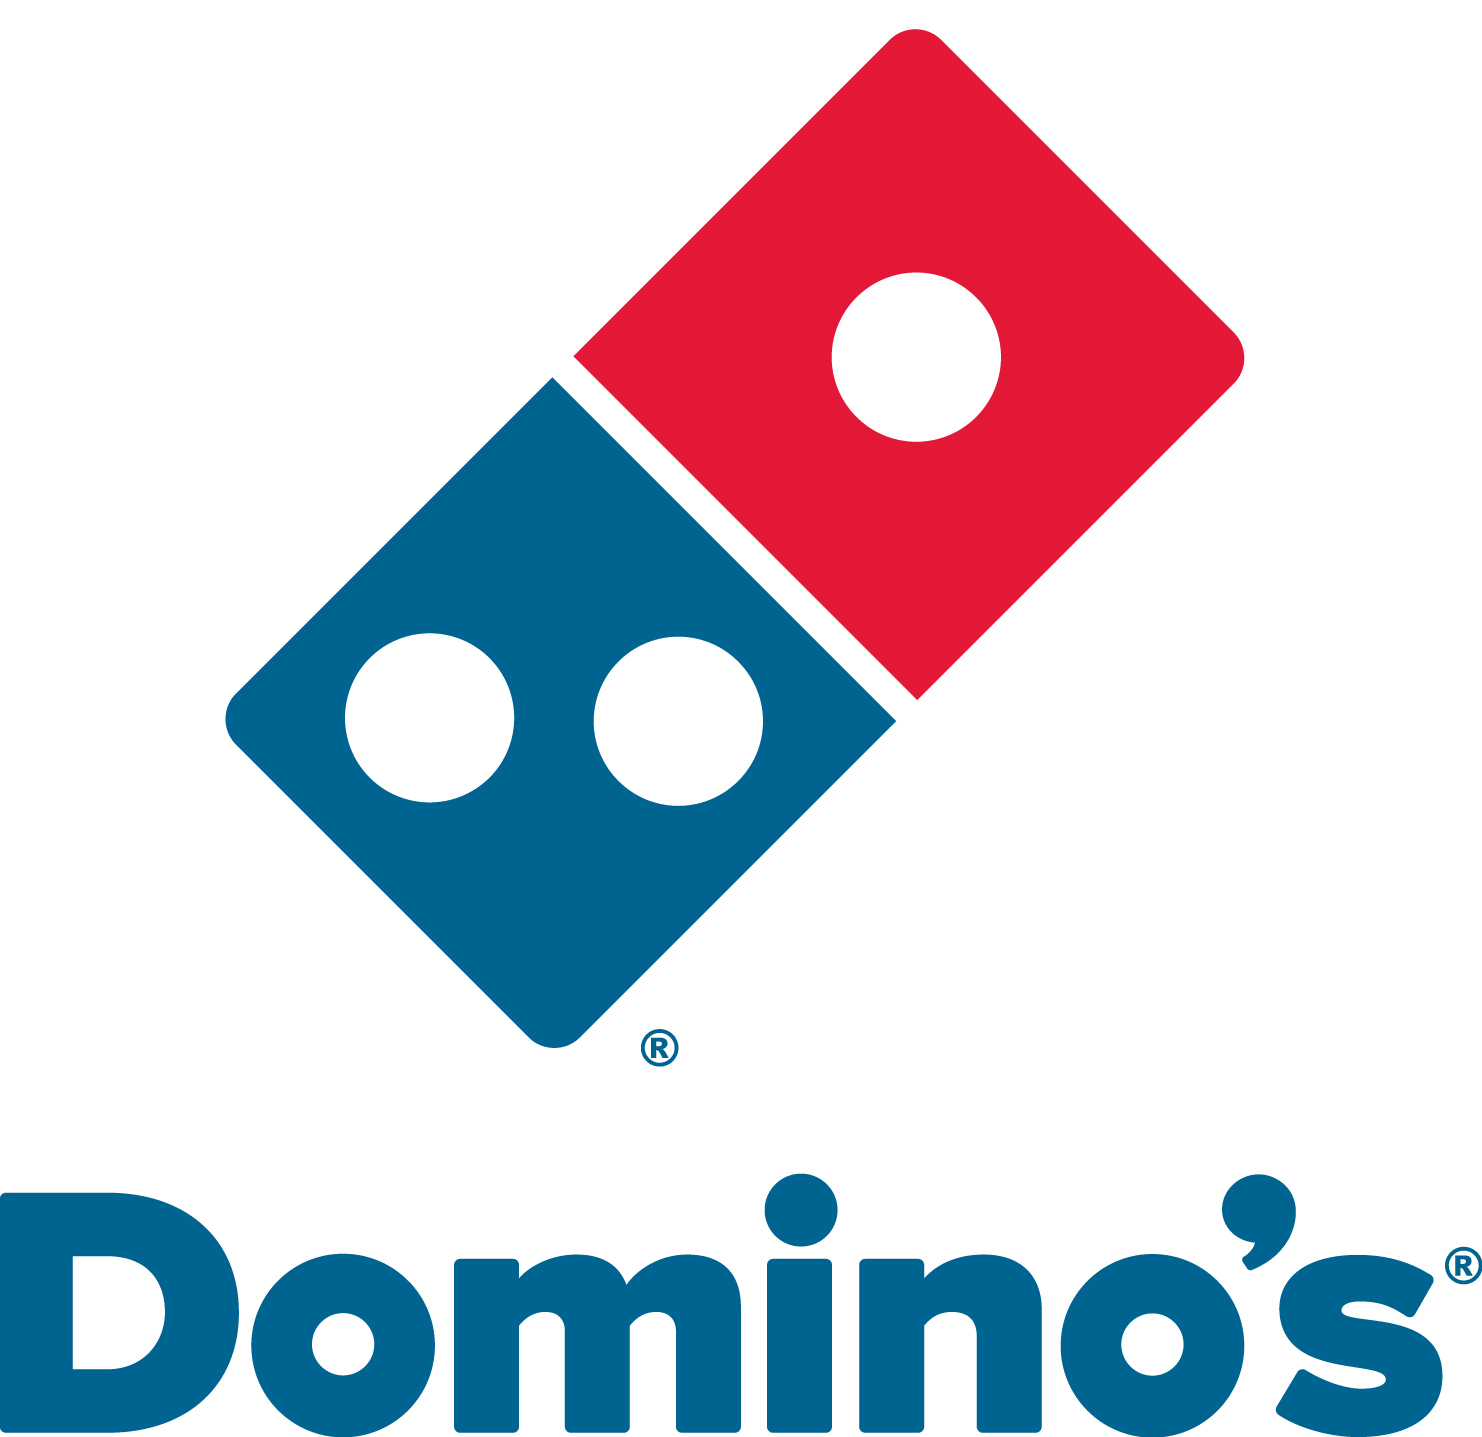 Apply this Domino's Voucher Code to get Free Garlic Bread